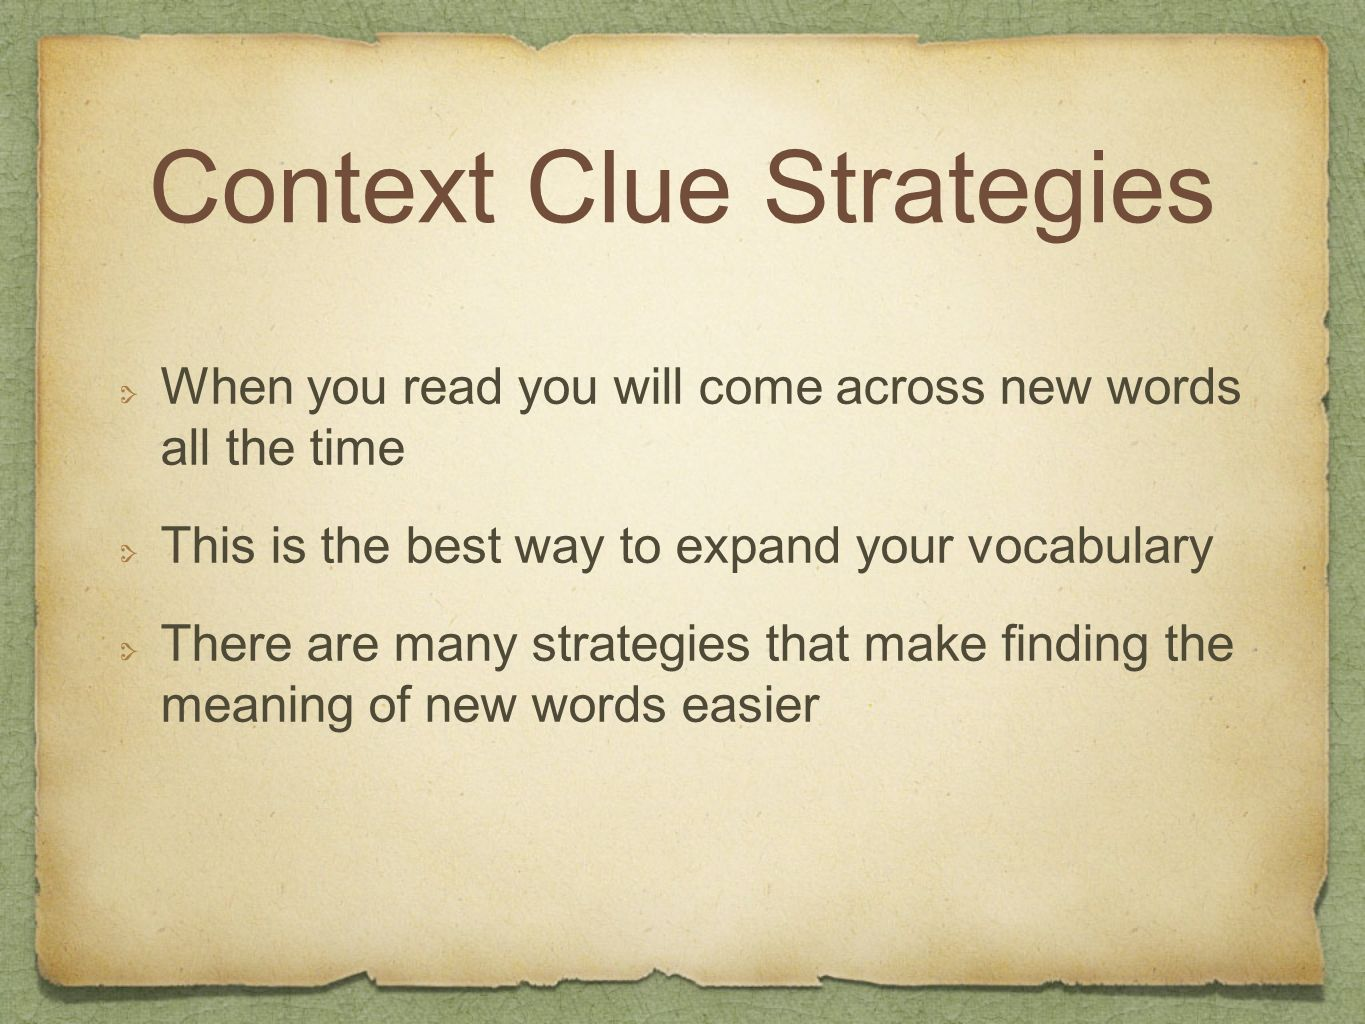 Context Clue Strategies